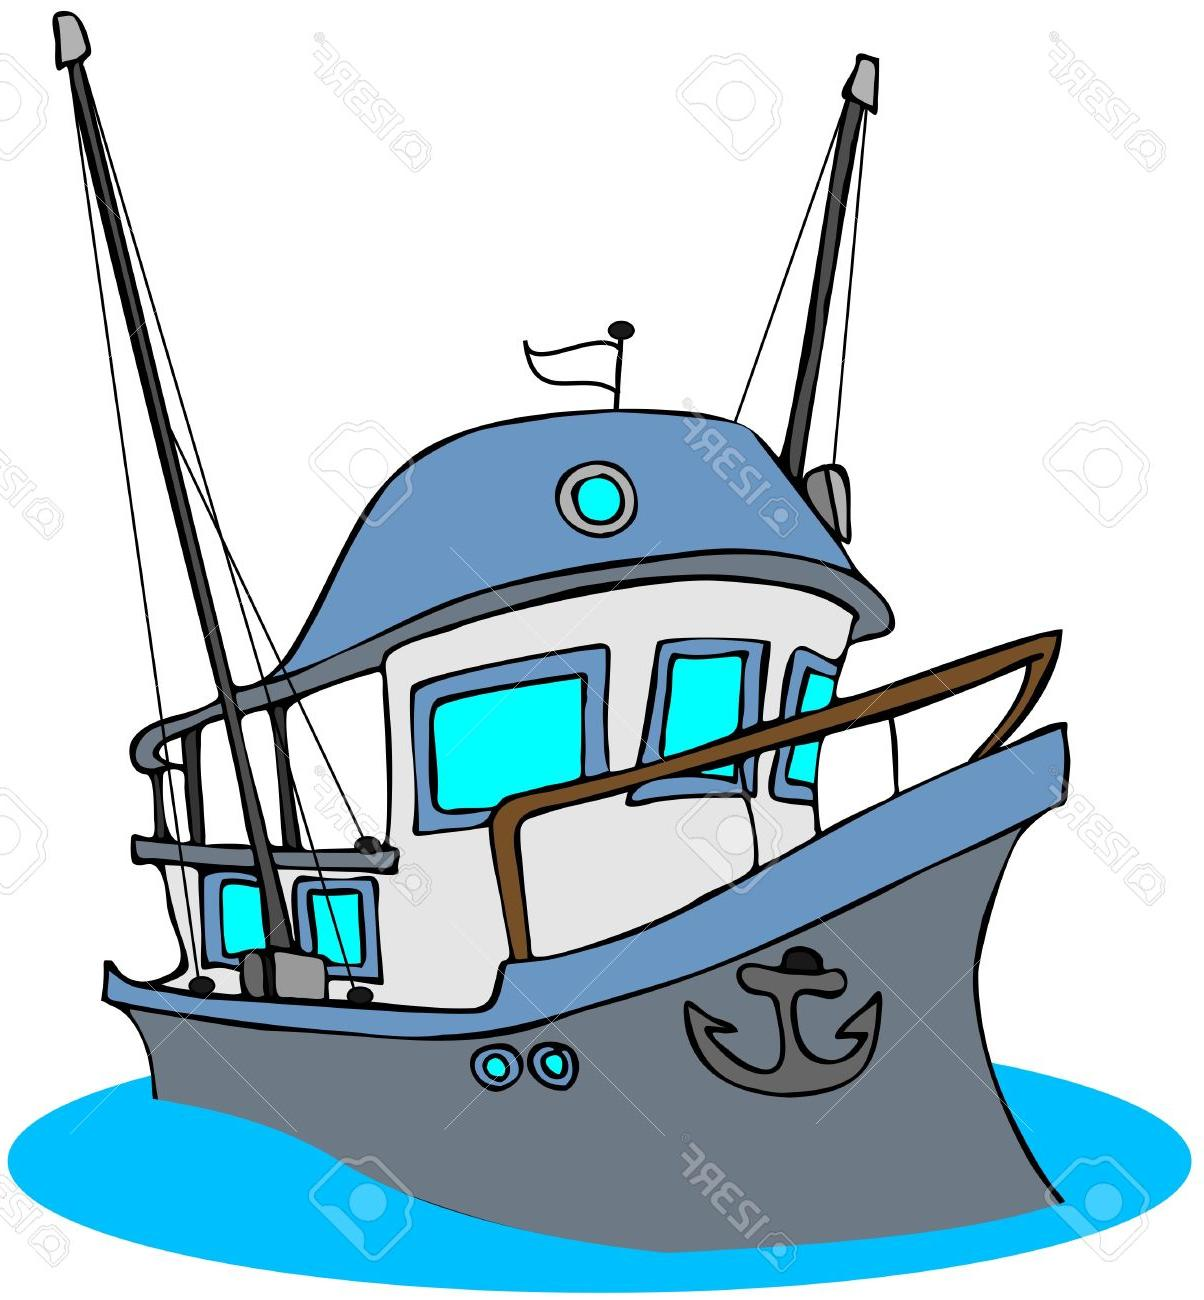 Boats clipart fishing vessel. Top boat cartoon cdr